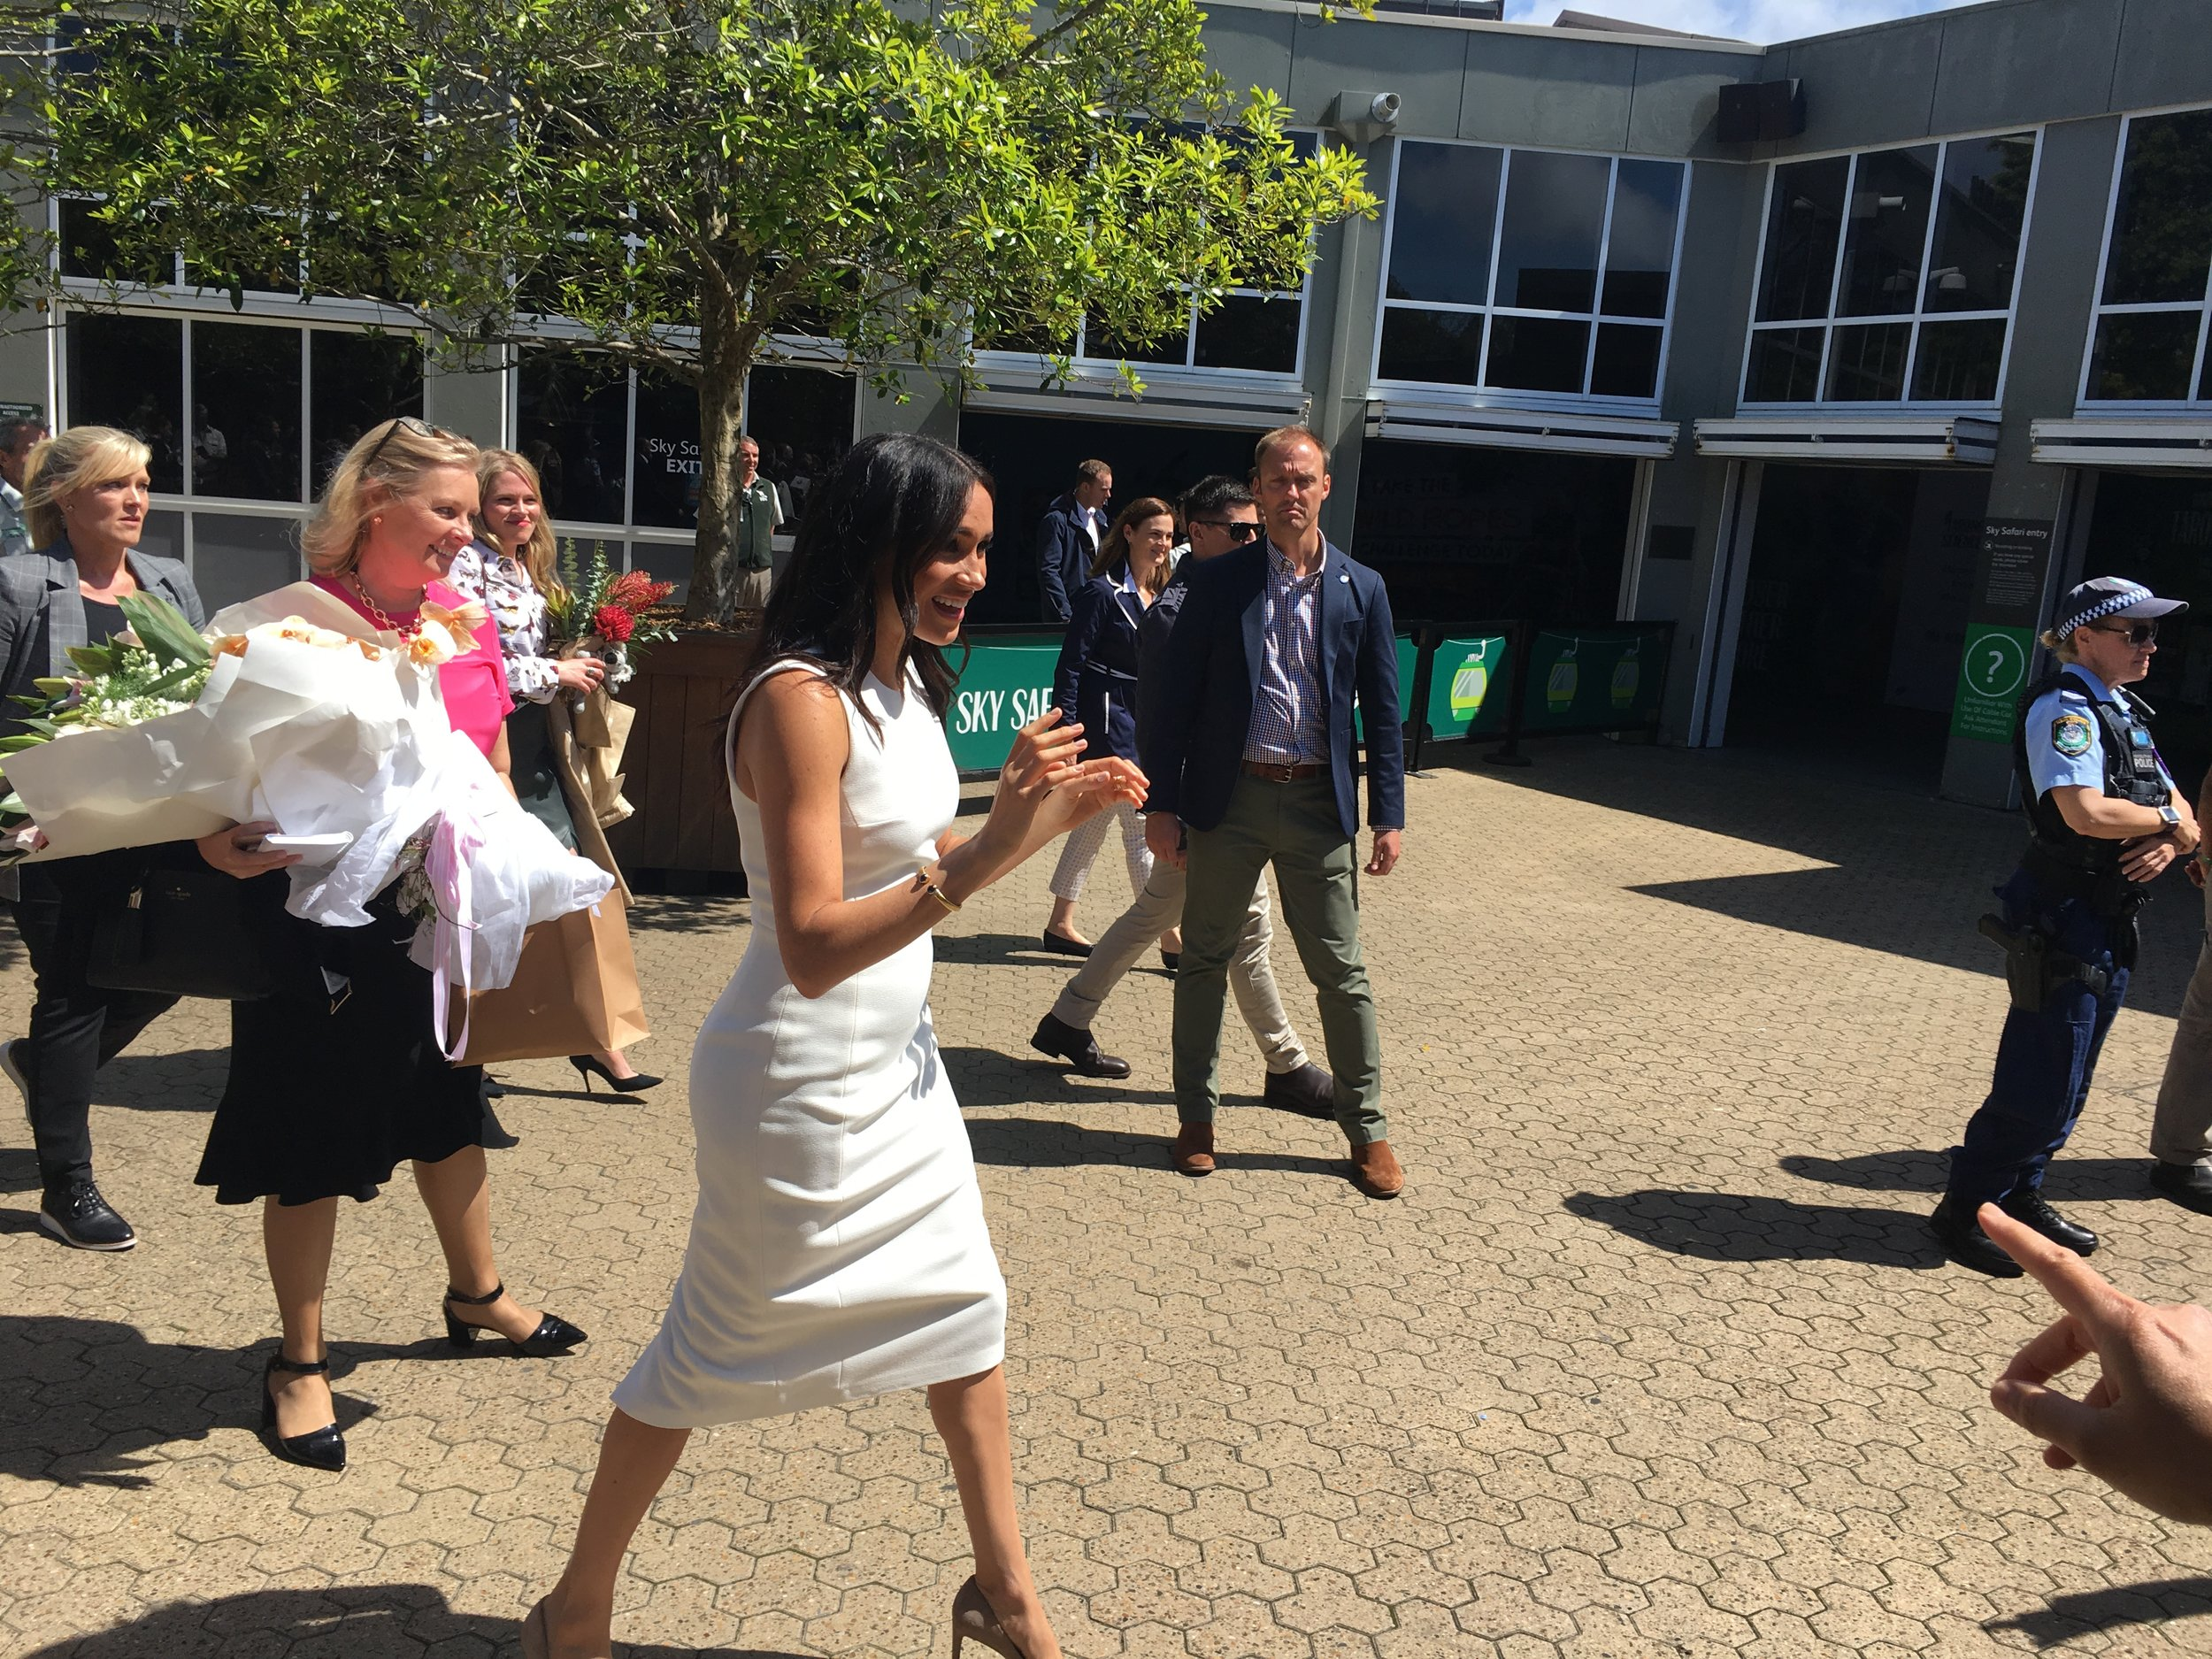 Surprise moment! Meghan breaks away from the Royal entourage to meet excited Mosman residents.